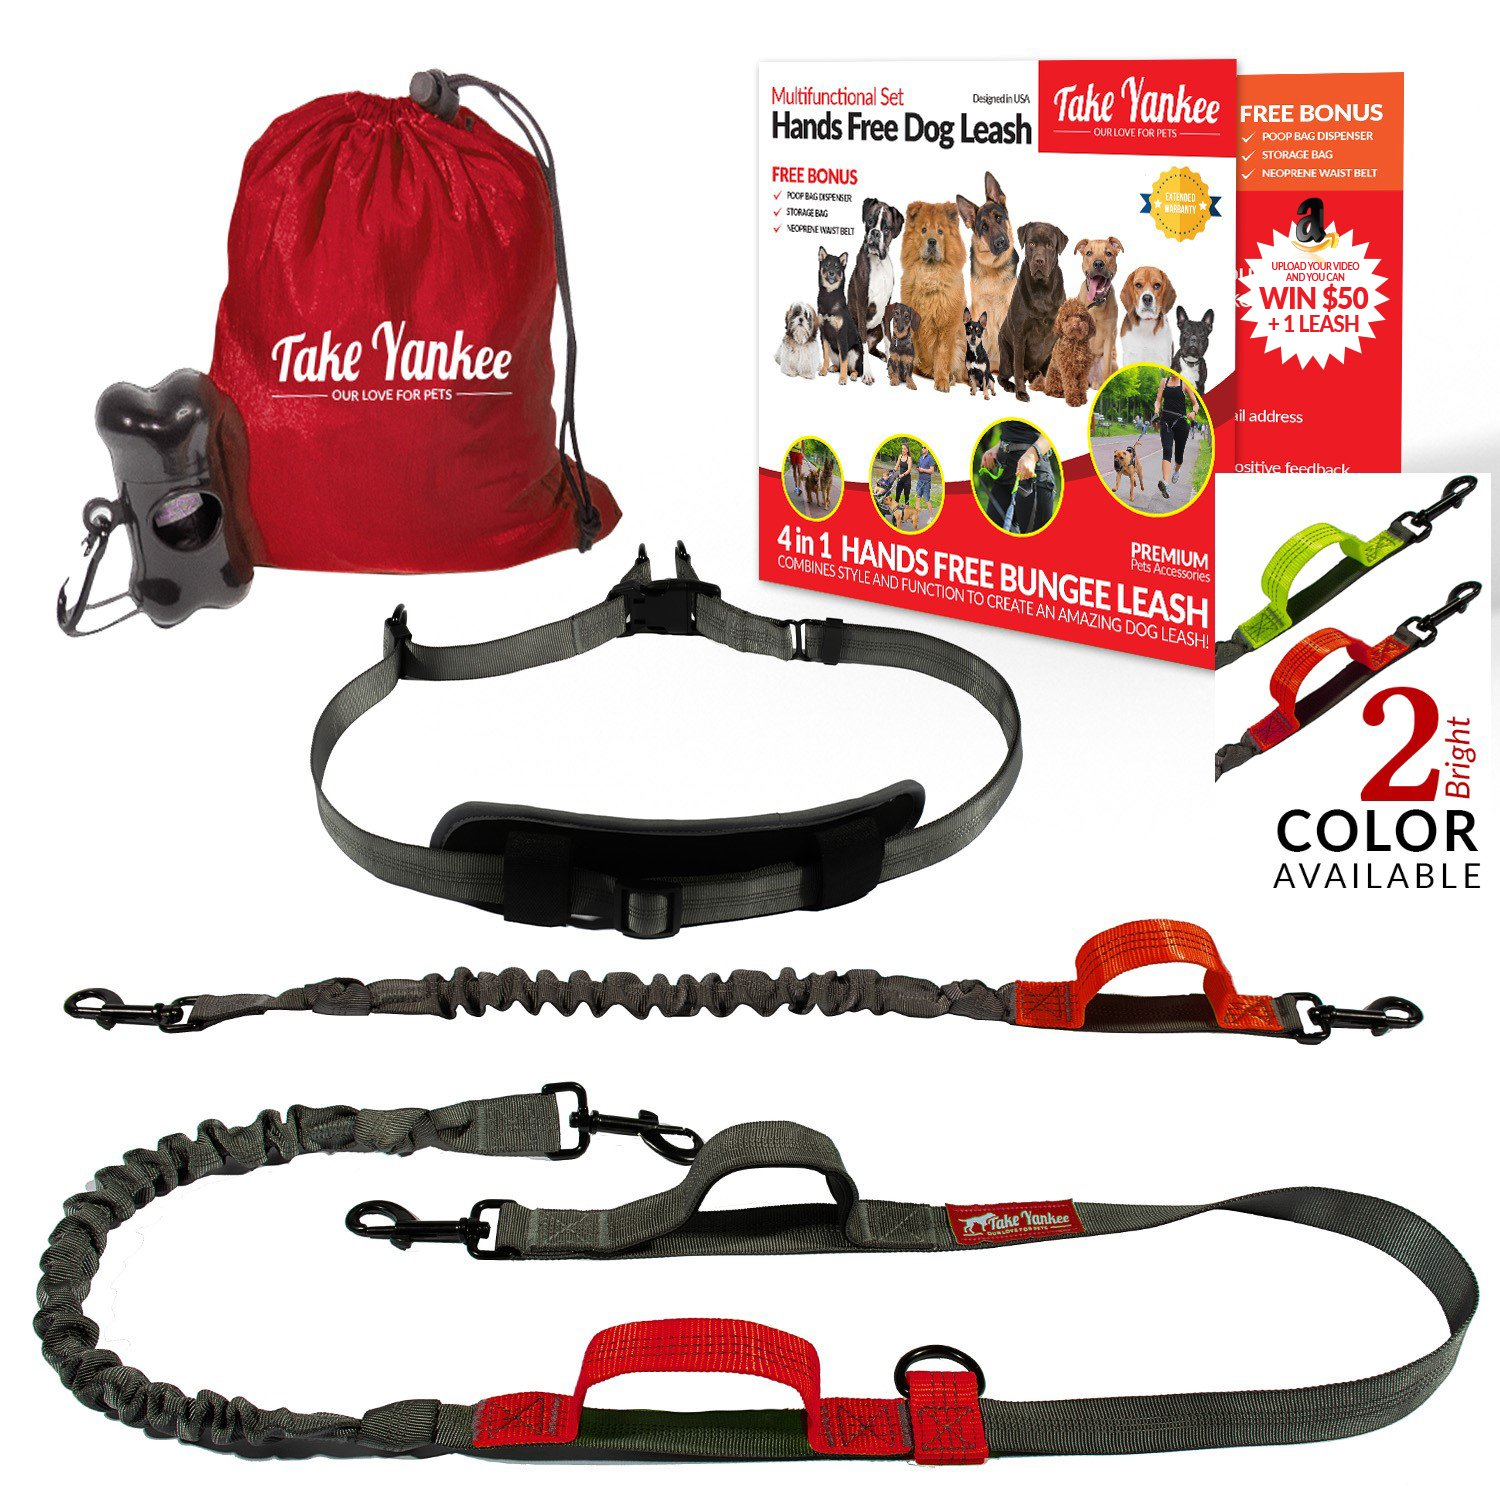 TAKE YANKEE Hands Free Bungee Leash + Dual Dog Leash Coupler Kit Multifunctional + Retractable Traffic Jogging Hiking Leash & Reflective Pet Leash Adjustable Body System + Padded Handles